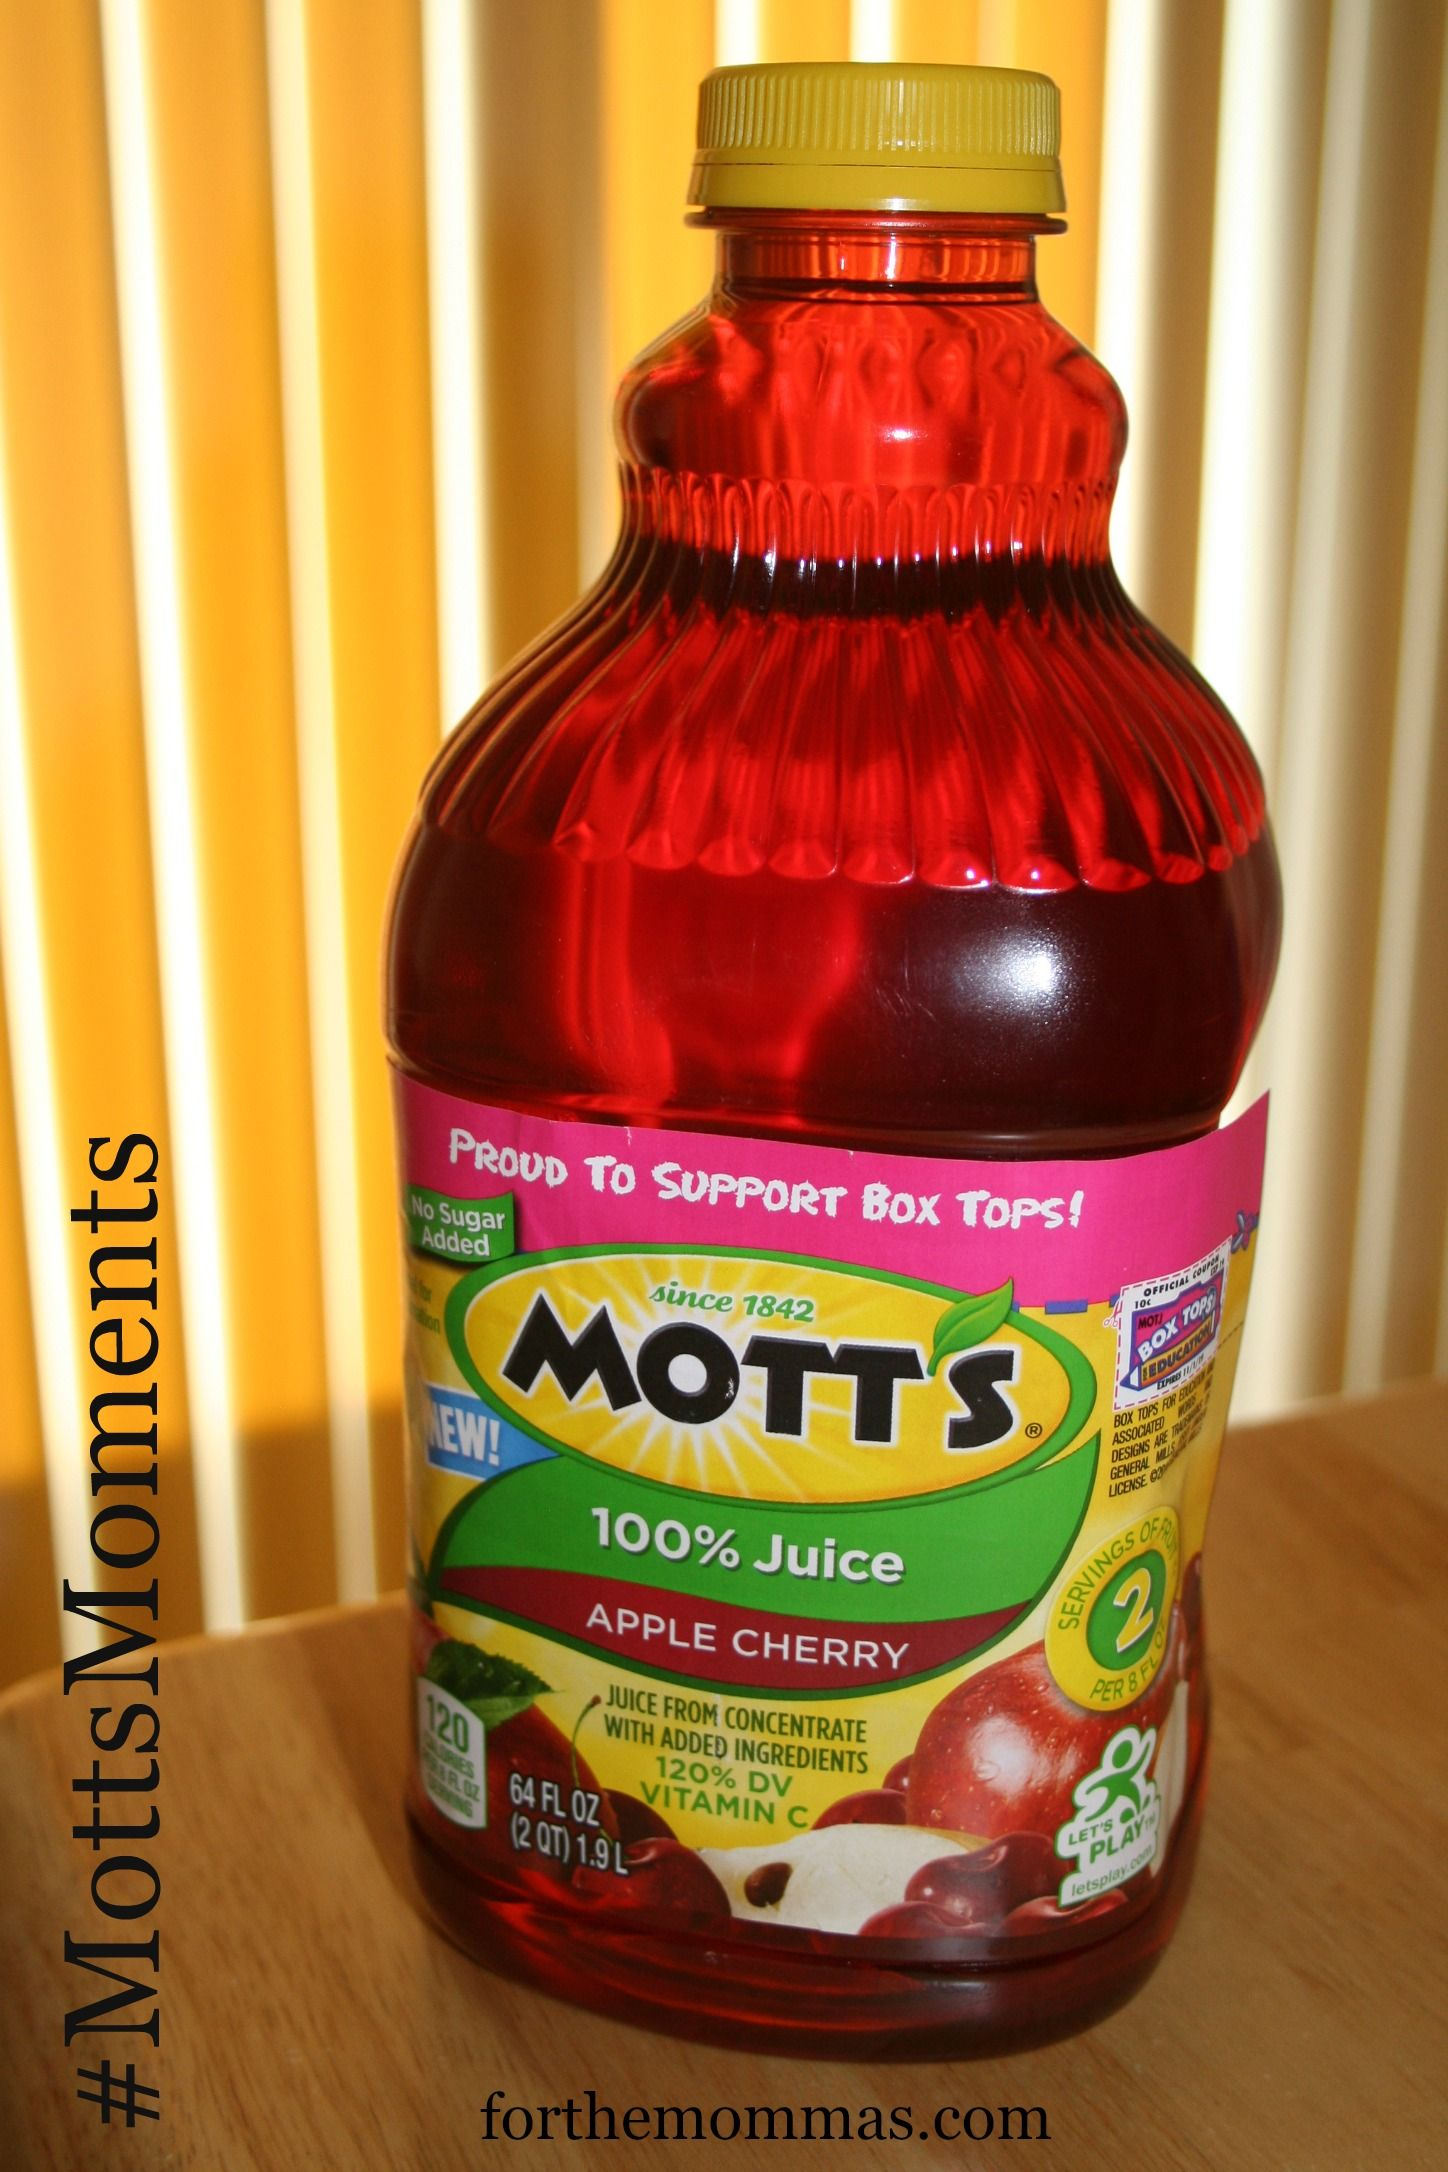 Enter to win a $100 Walmart gift card and try New Mott's® Apple Cherry Juice. #ad #MottsMoments #Sweepstakes